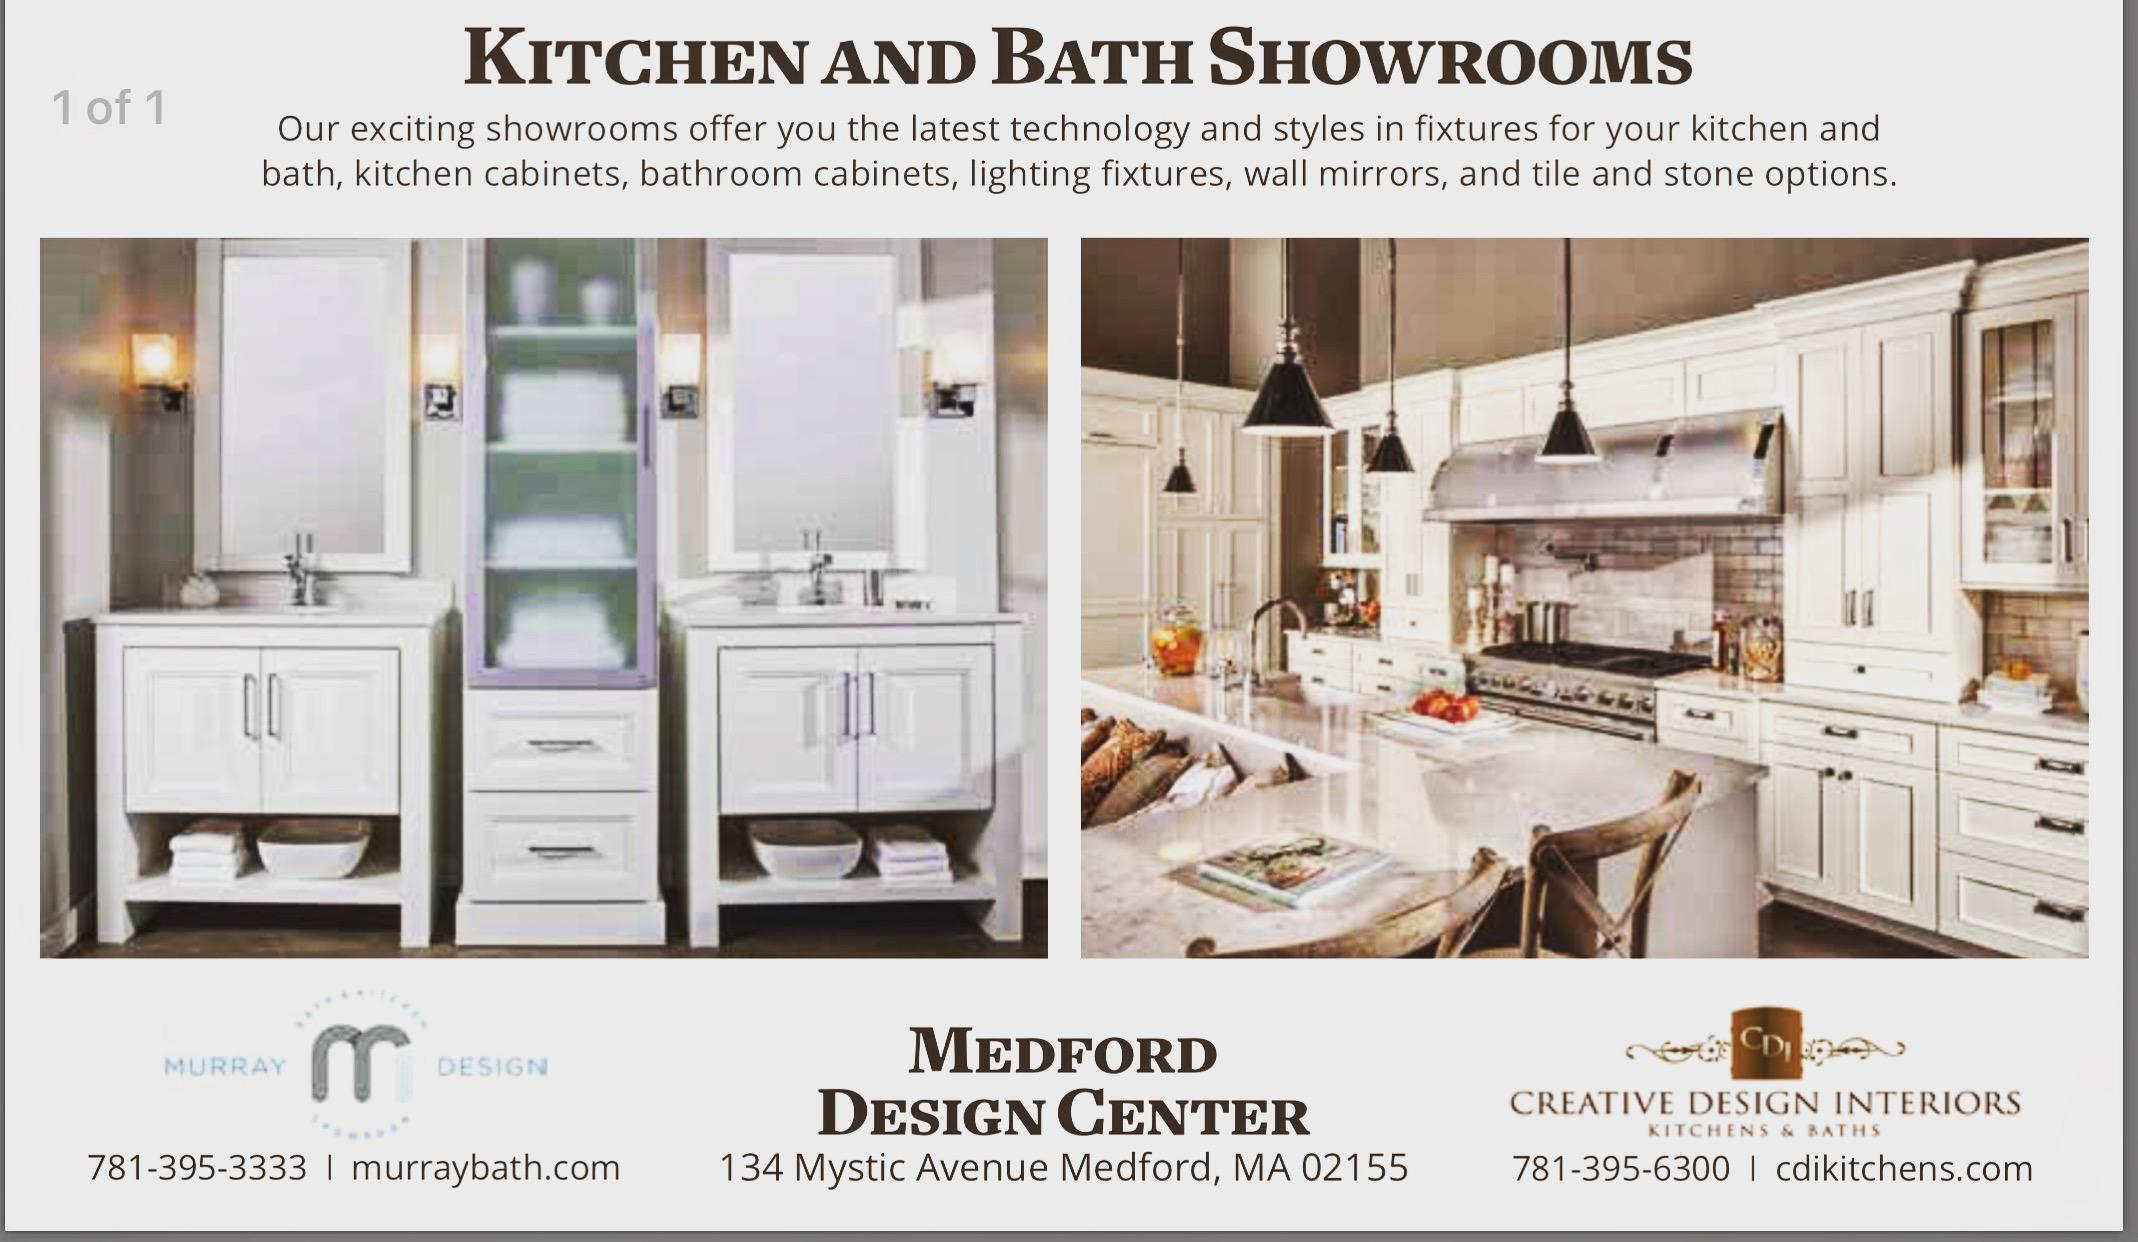 Creative Design Interiors Kitchen And Bath In Medford Ma 781 395 6